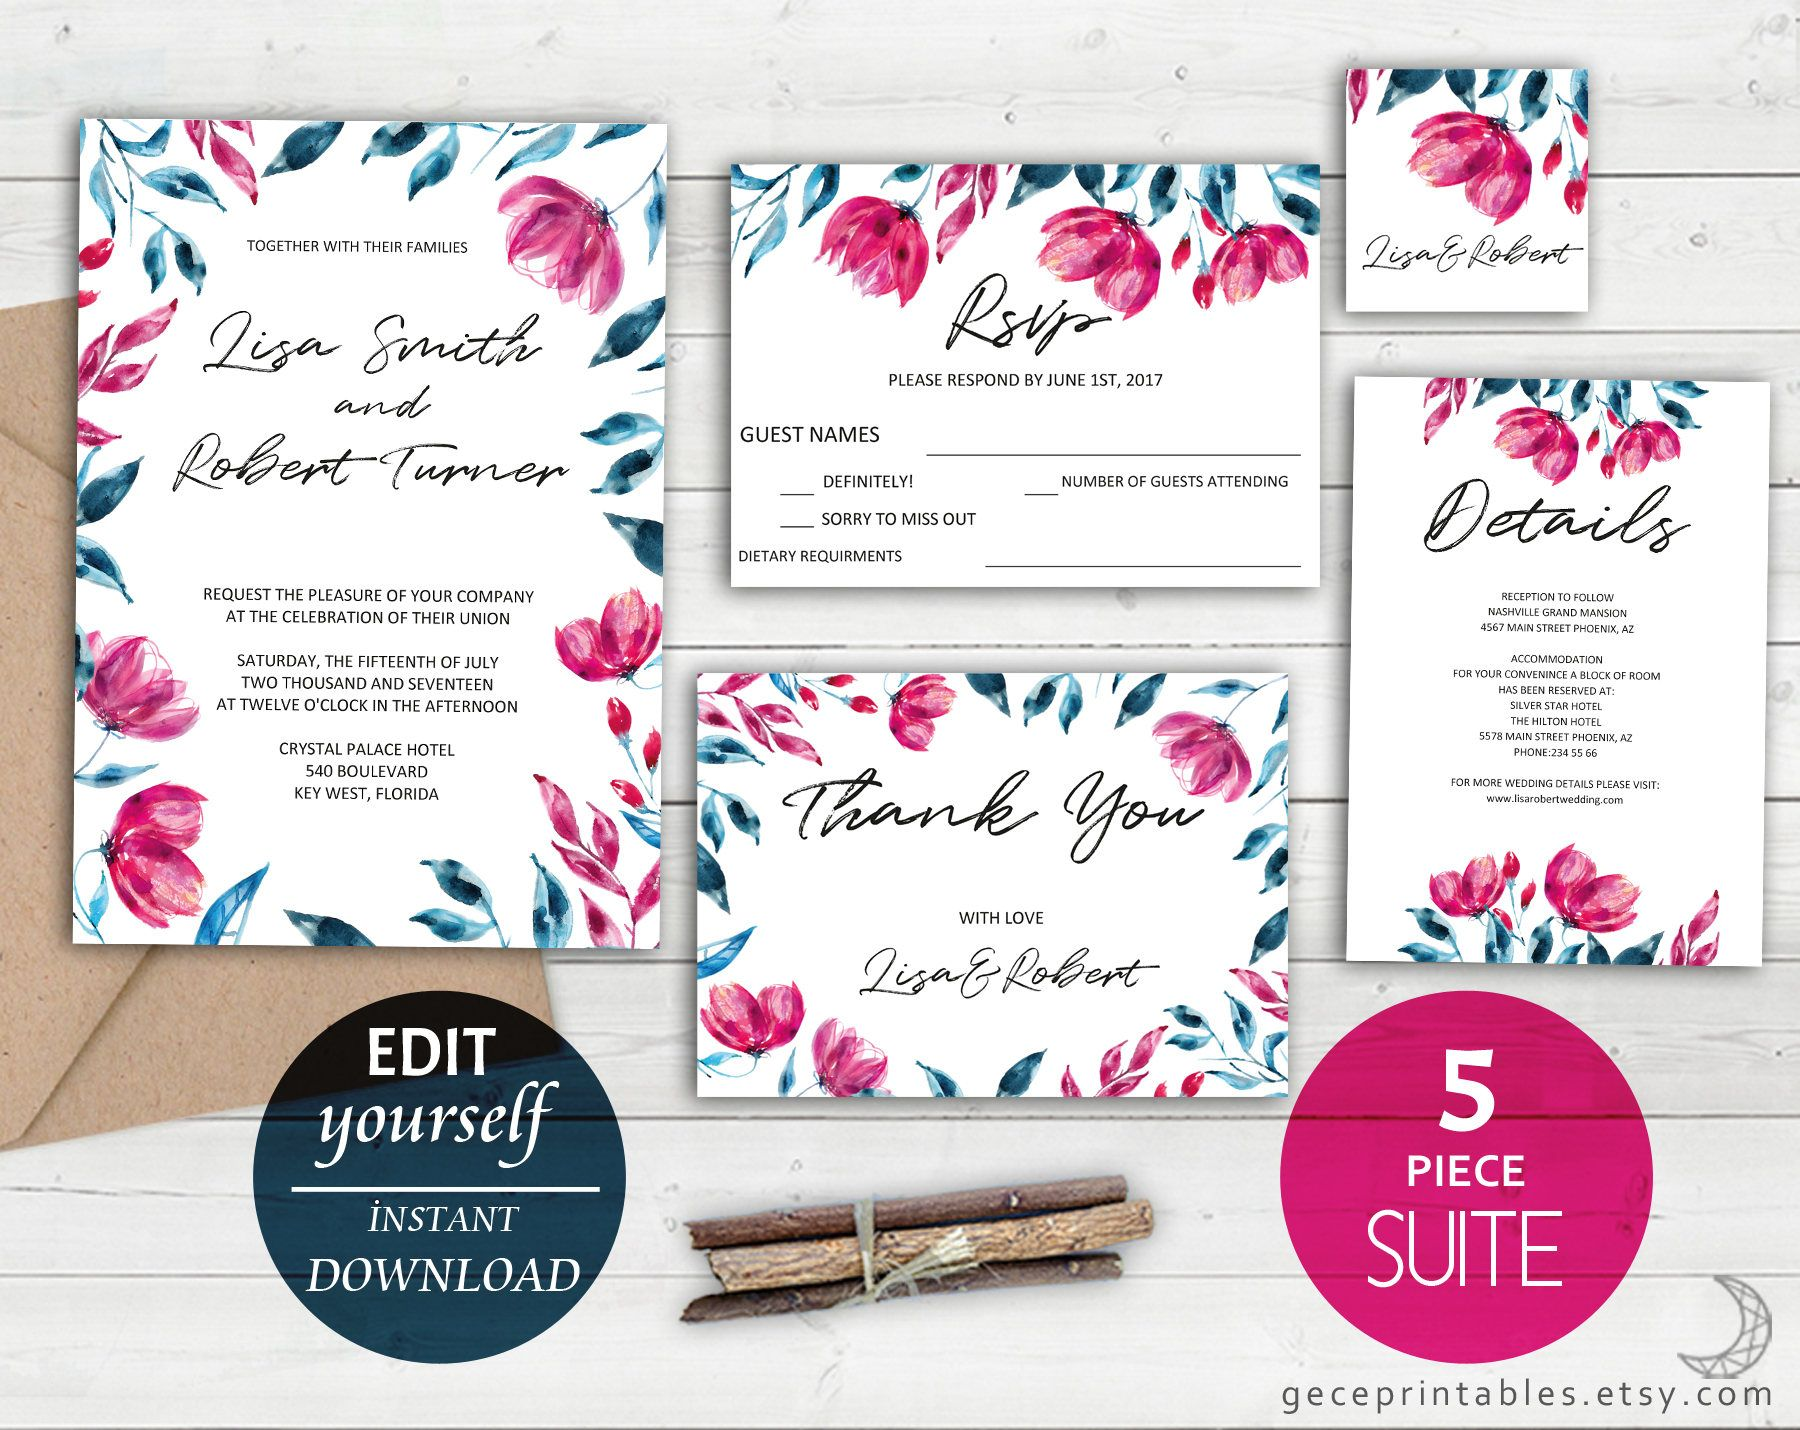 Editable Wedding Template Wedding Invitation Suite Pink Navy